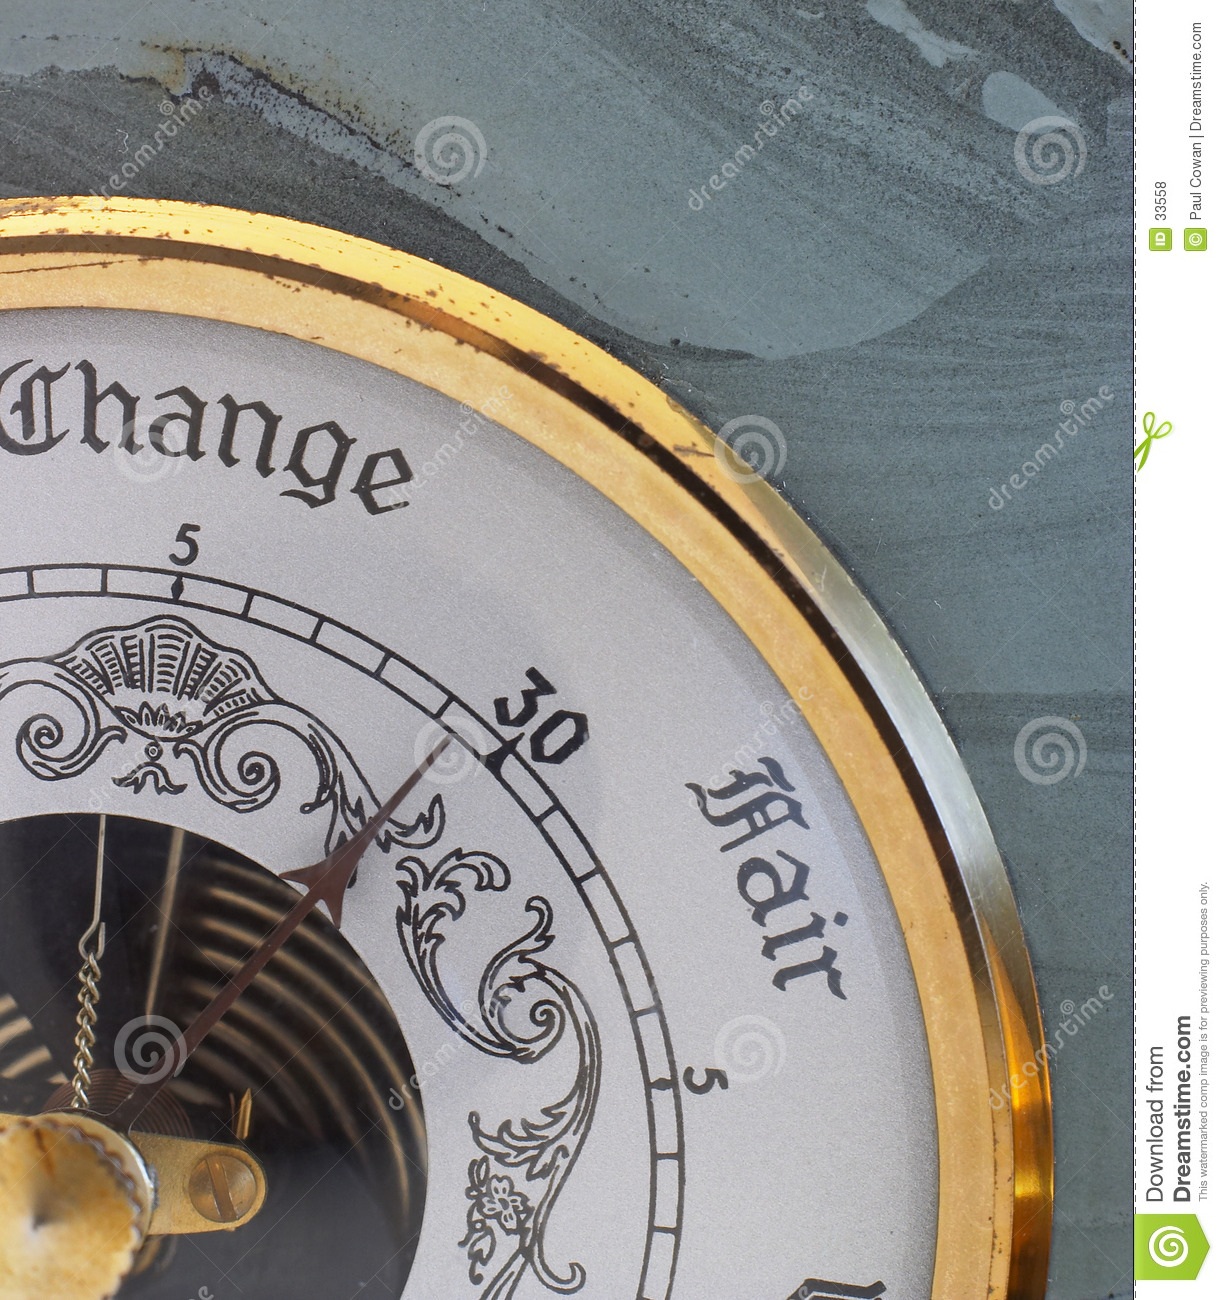 how to set up a barometer for the first time